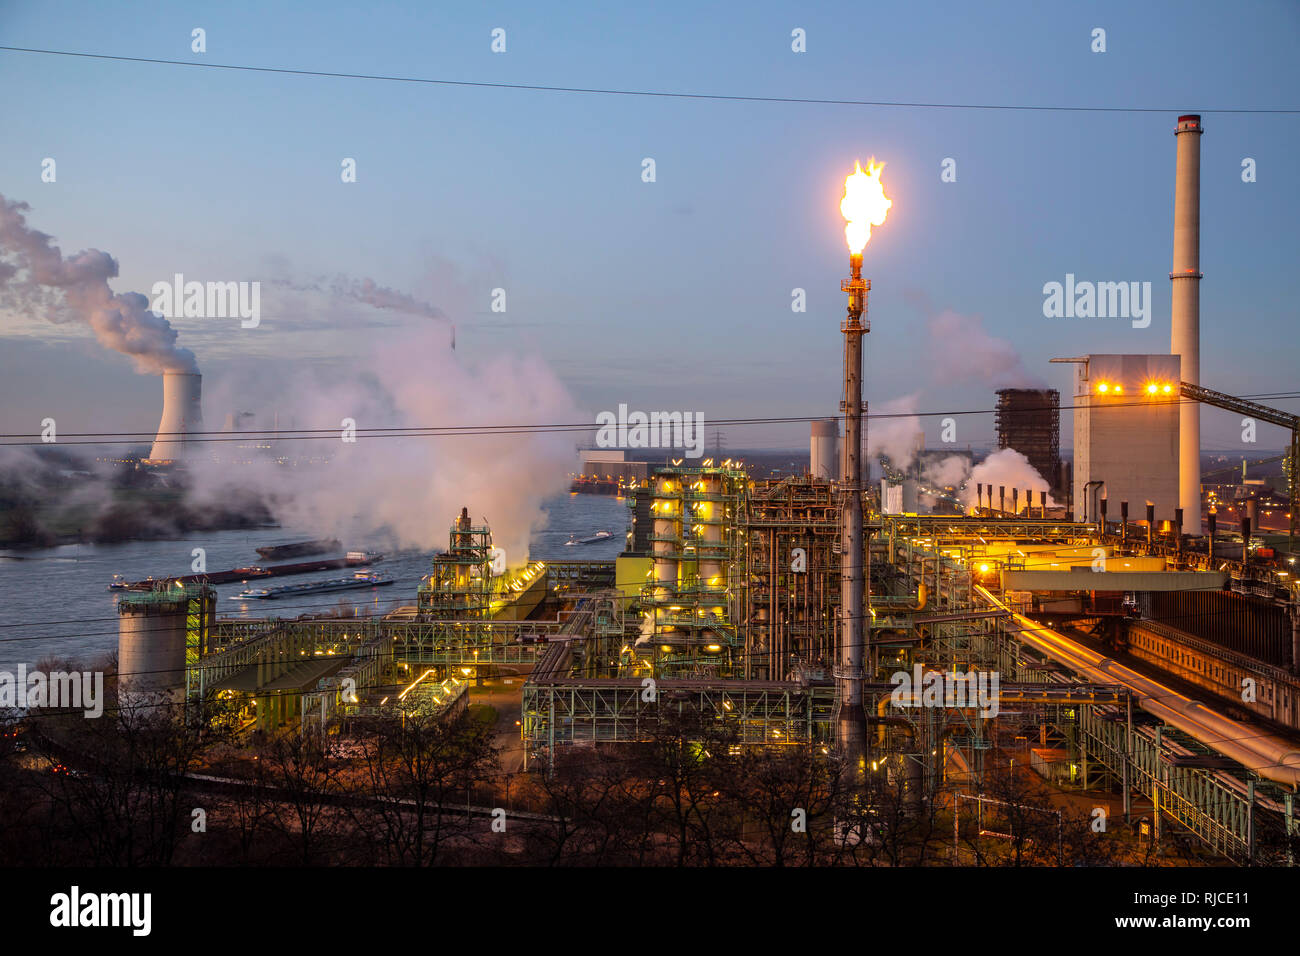 Thyssenkrupp Steel Stock Photos & Thyssenkrupp Steel Stock Images